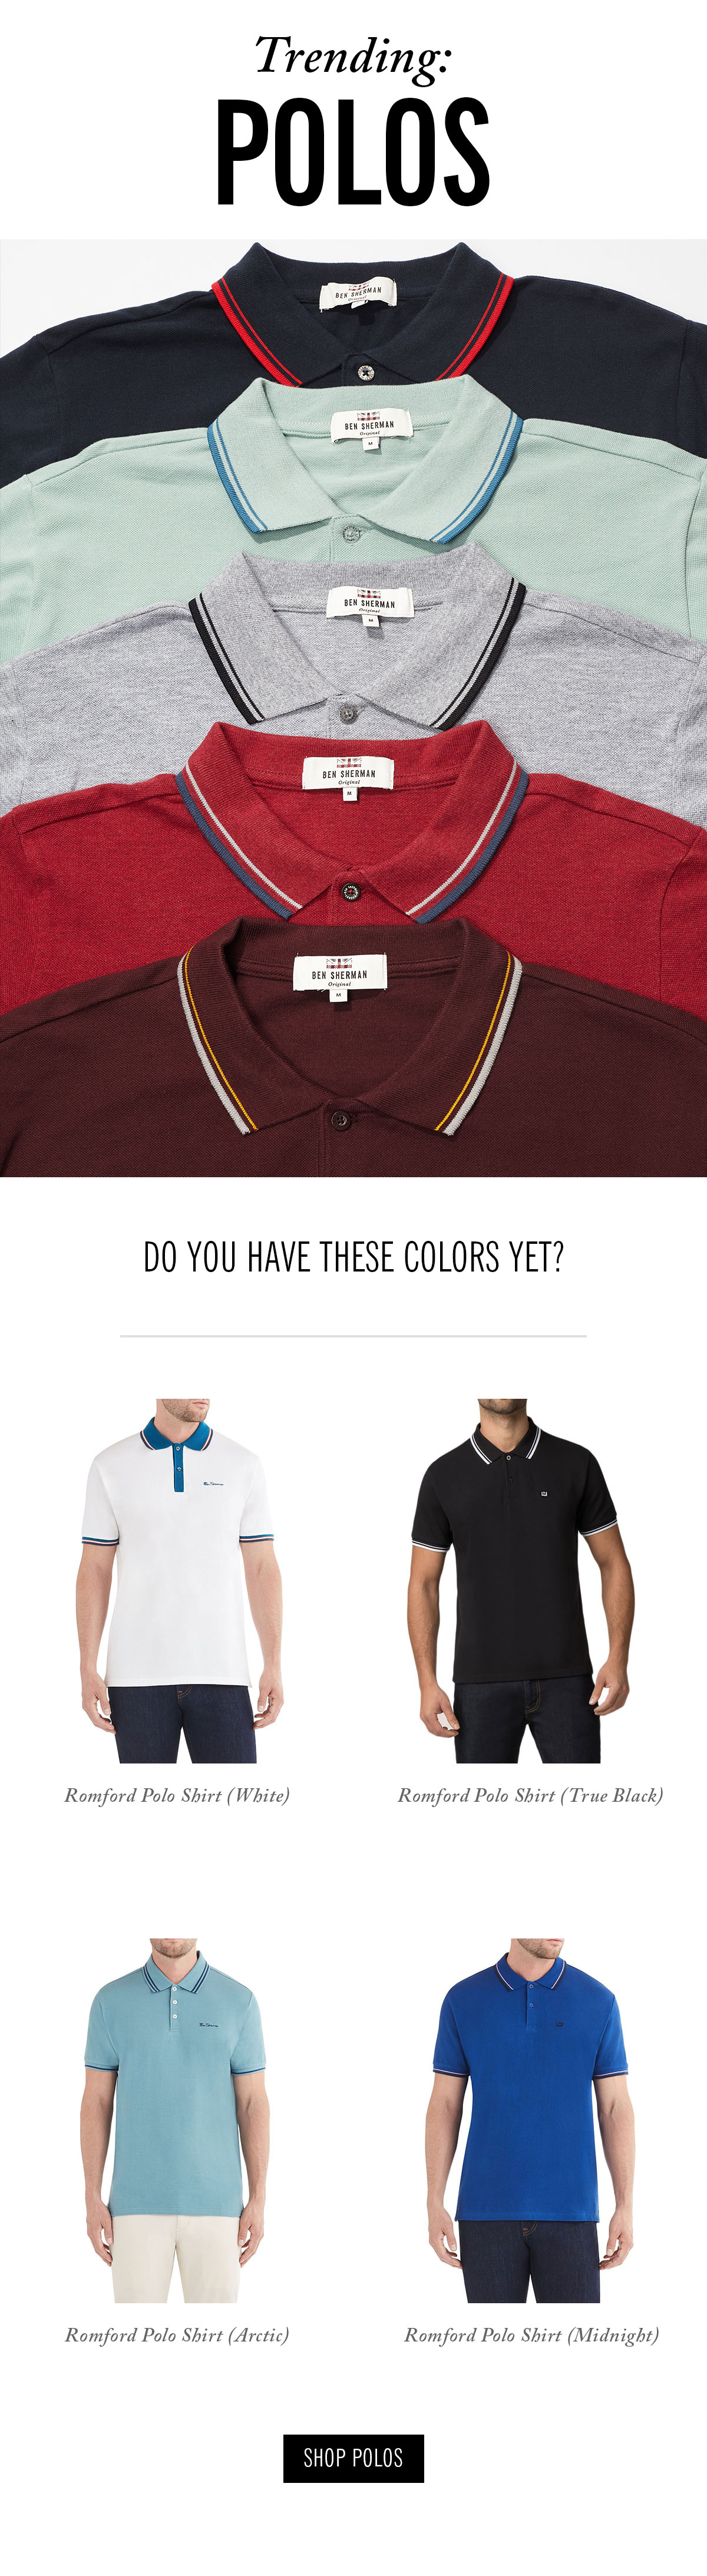 Polo shirts in multiple colors